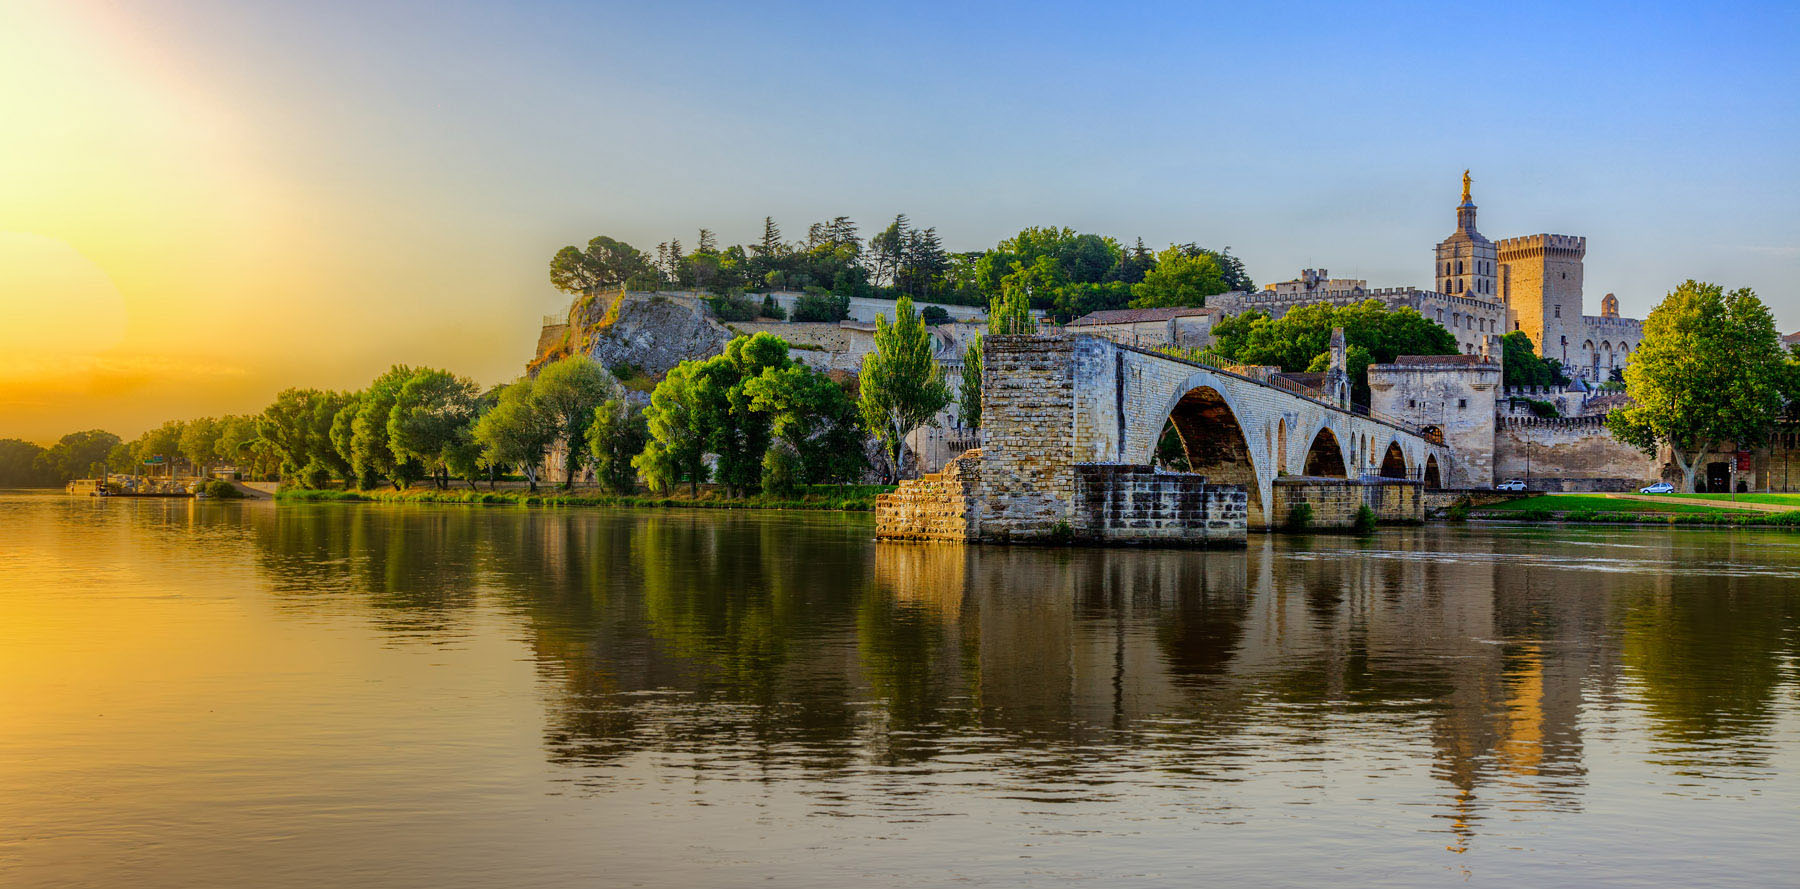 A view of the Avignon Bridge and Popes Palace in Pont Saint-Benezet, Provence, France